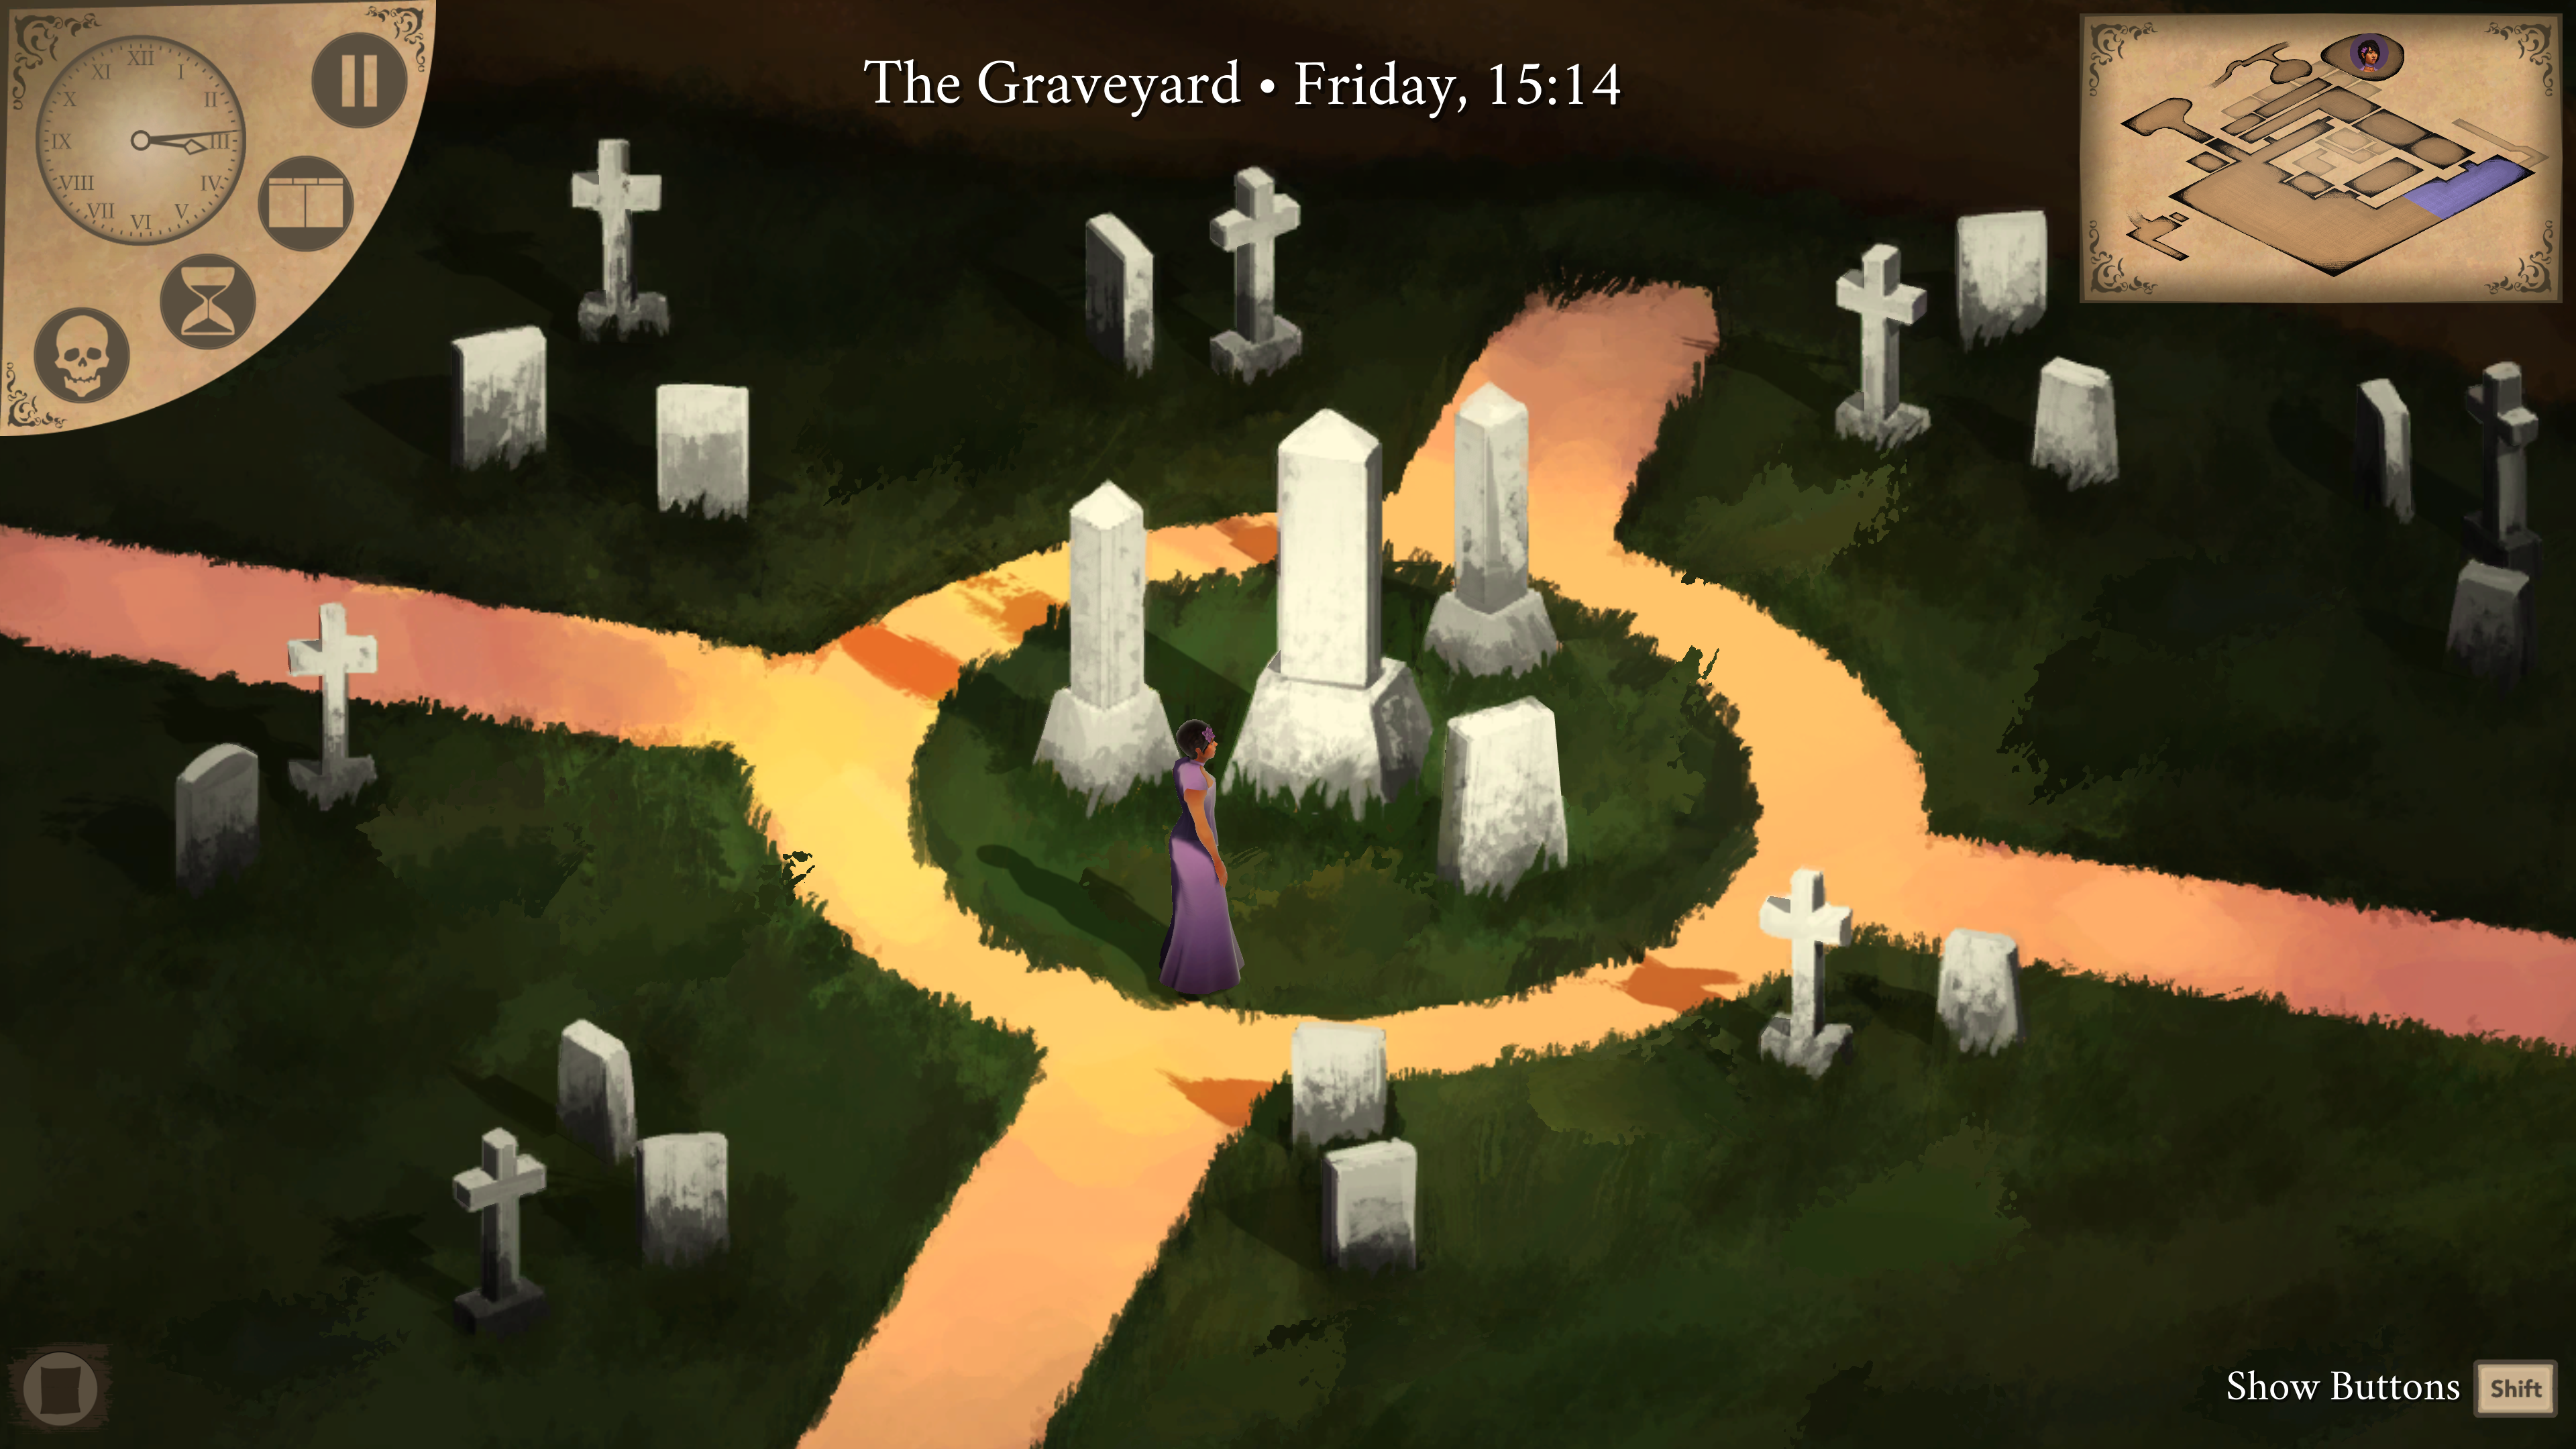 Elisnore - Ophelia visits the graveyard.